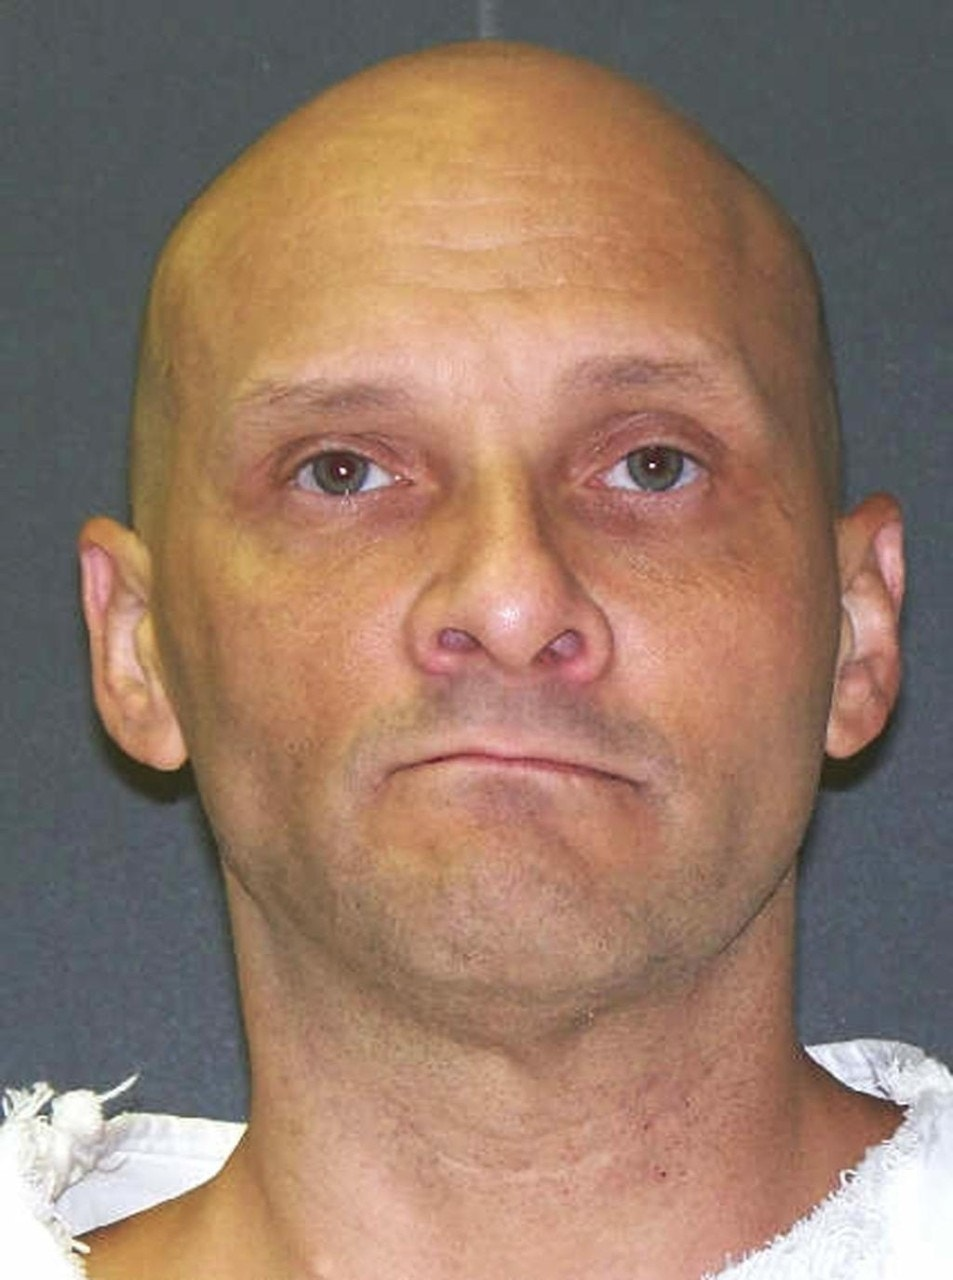 The Latest: Supreme Court declines to block Texas execution